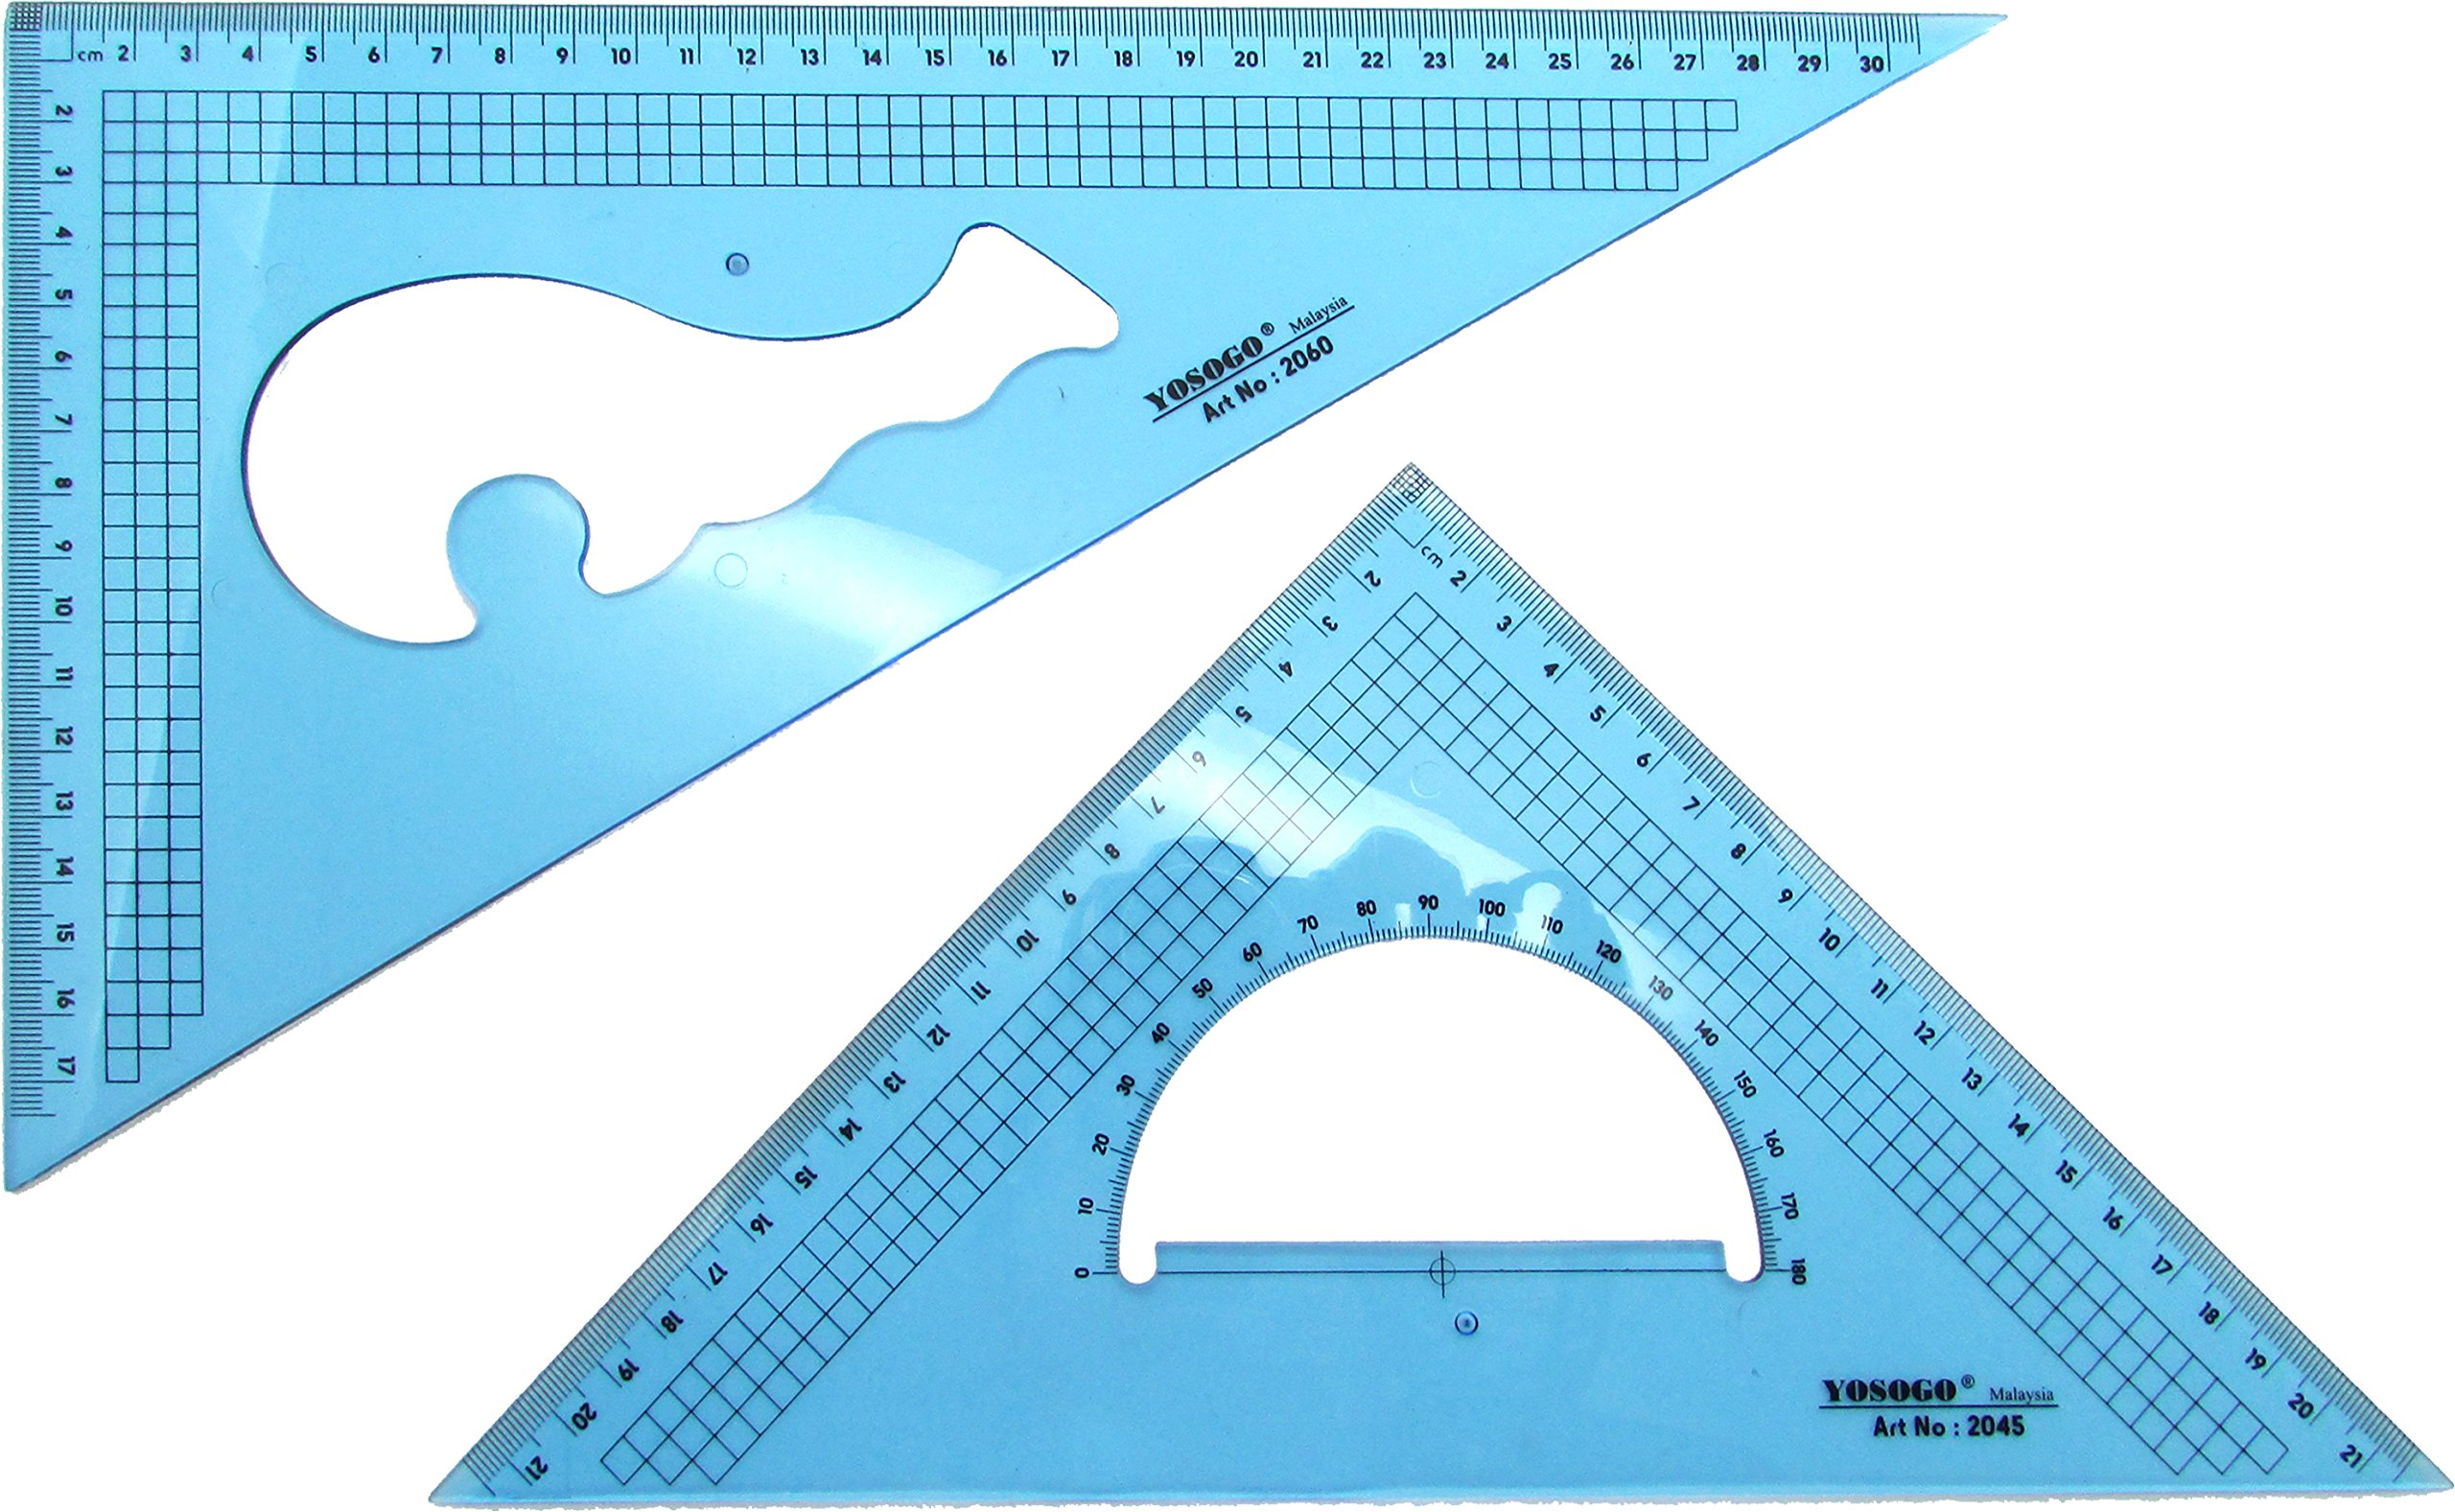 Set of 2 Large Triangle Set Square: 12 Inch (30 cm) 30/60 Degree & 9 inch (22 cm) 45/90 Degree (CM Scale)